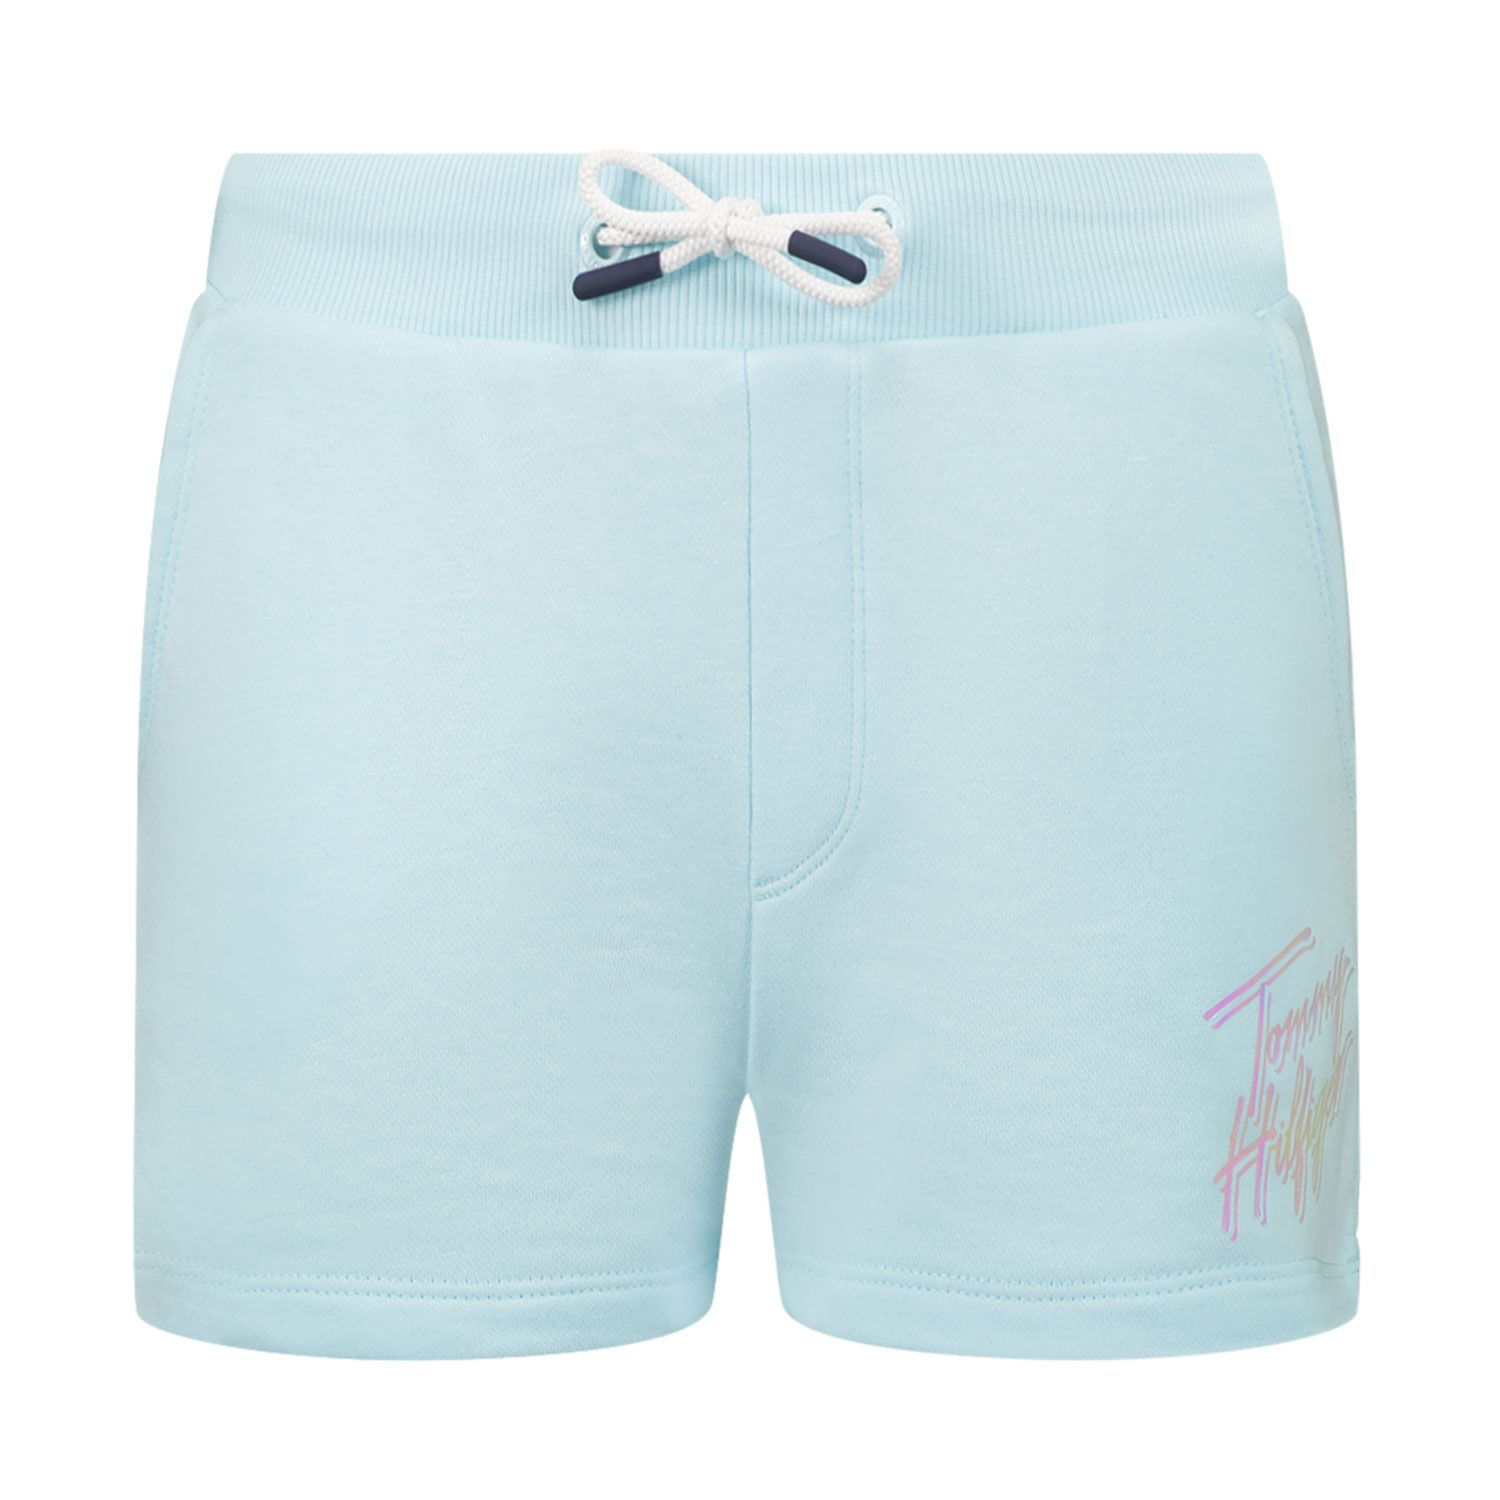 Picture of Tommy Hilfiger KG0KG05899 kids shorts turquoise